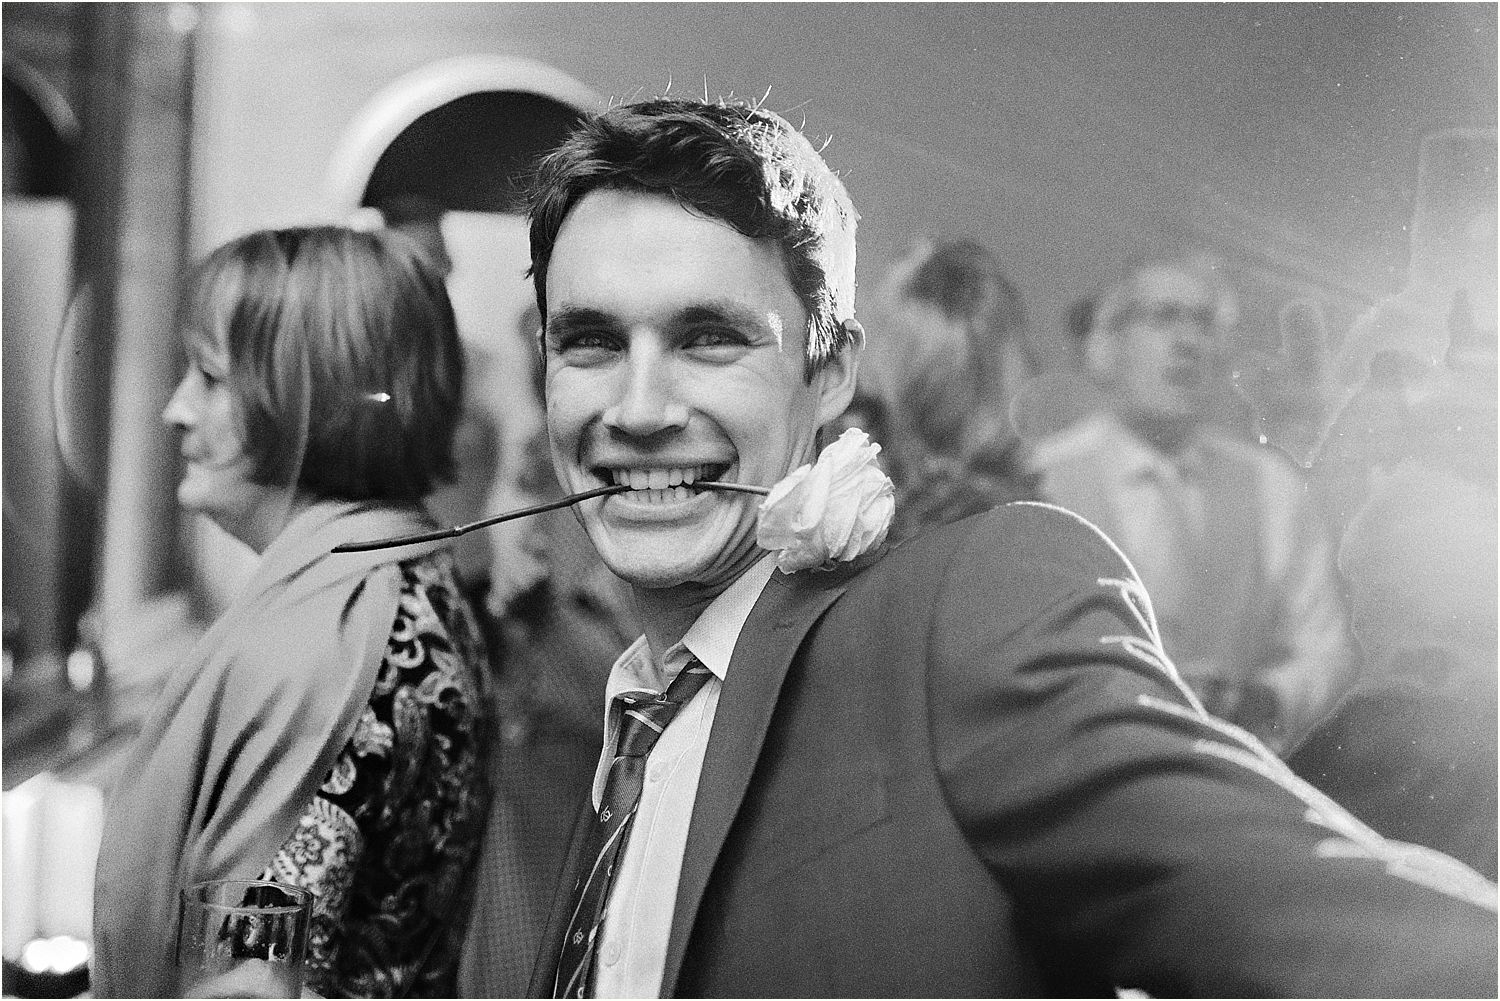 Guest with rose in his teeth at Hampton Court House wedding